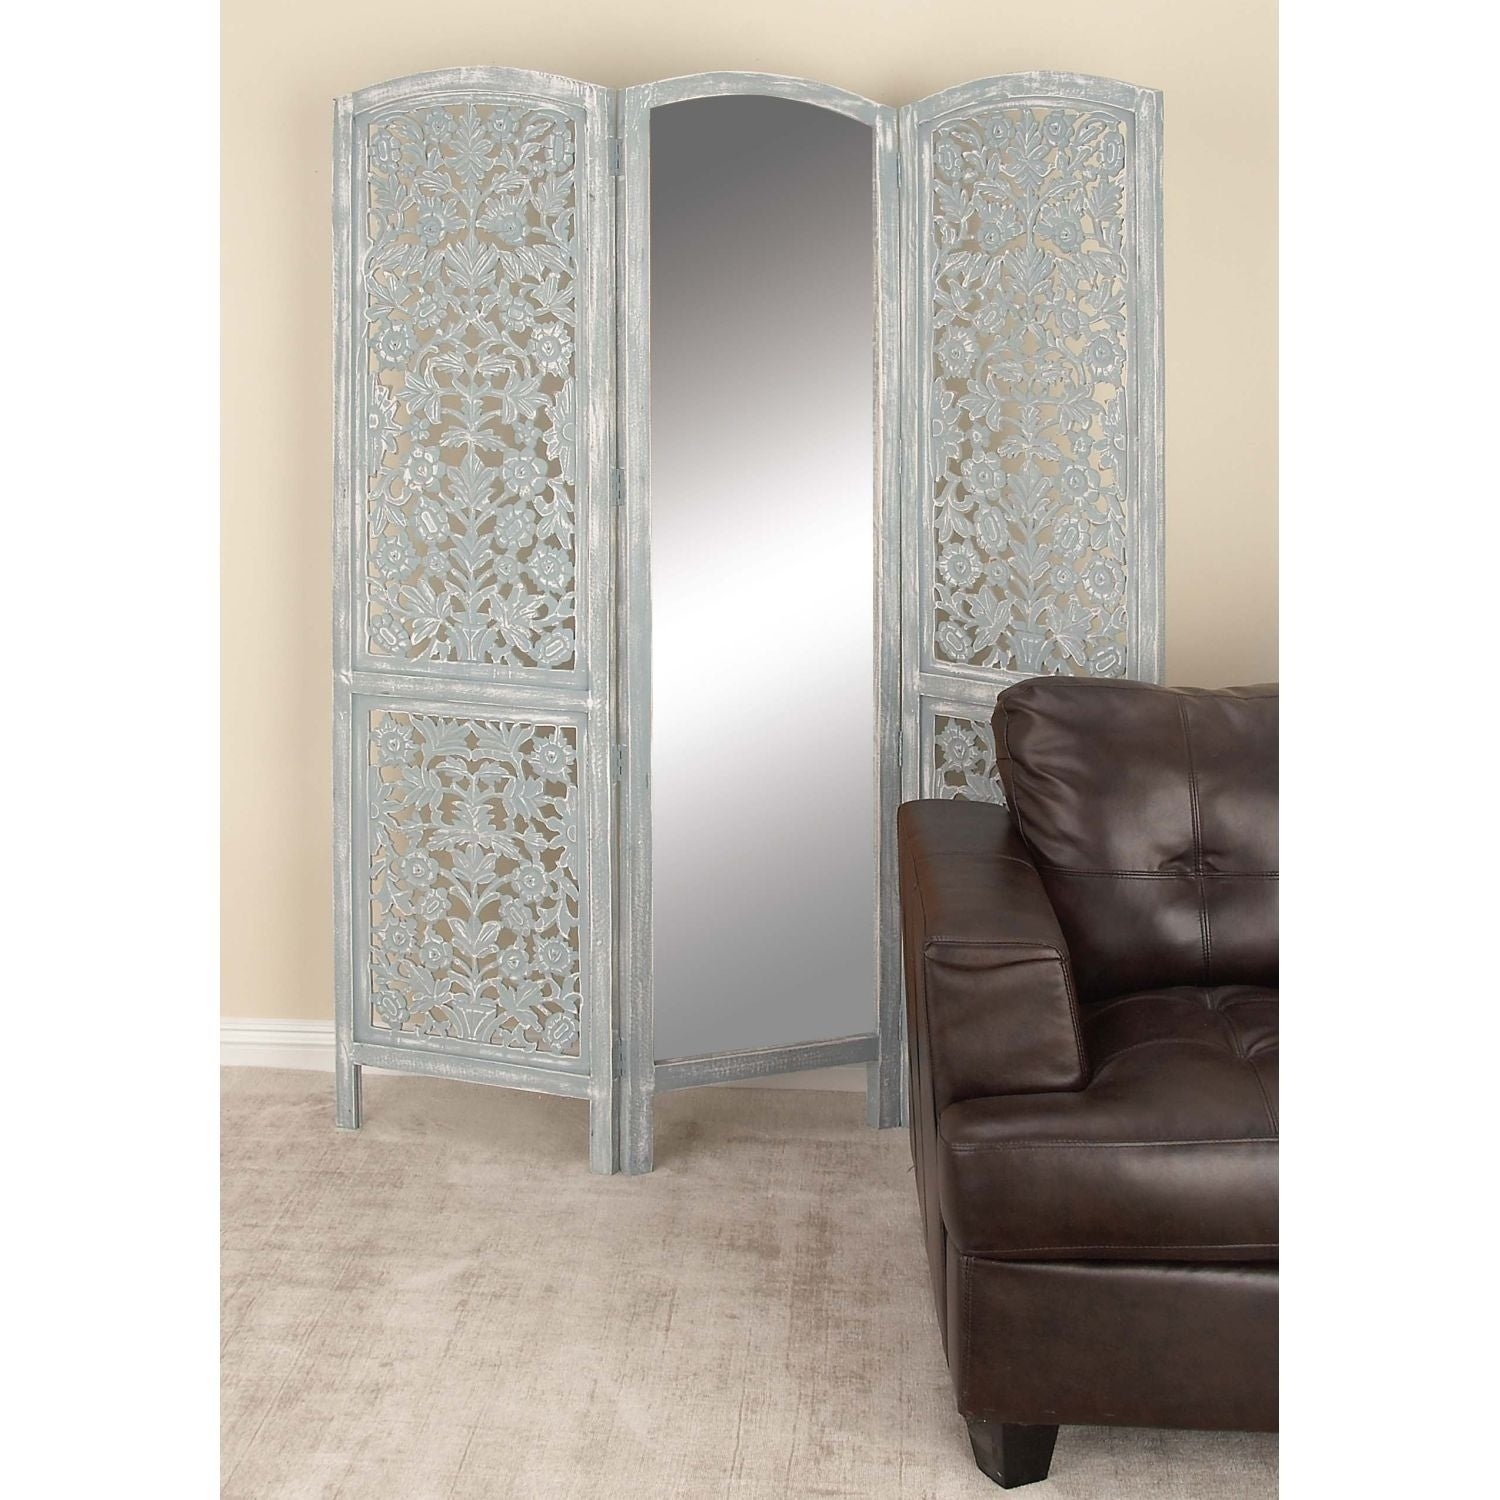 Studio 350 Wood Mirror 3 Panel Screen 60 inches wide, 72 inches ...